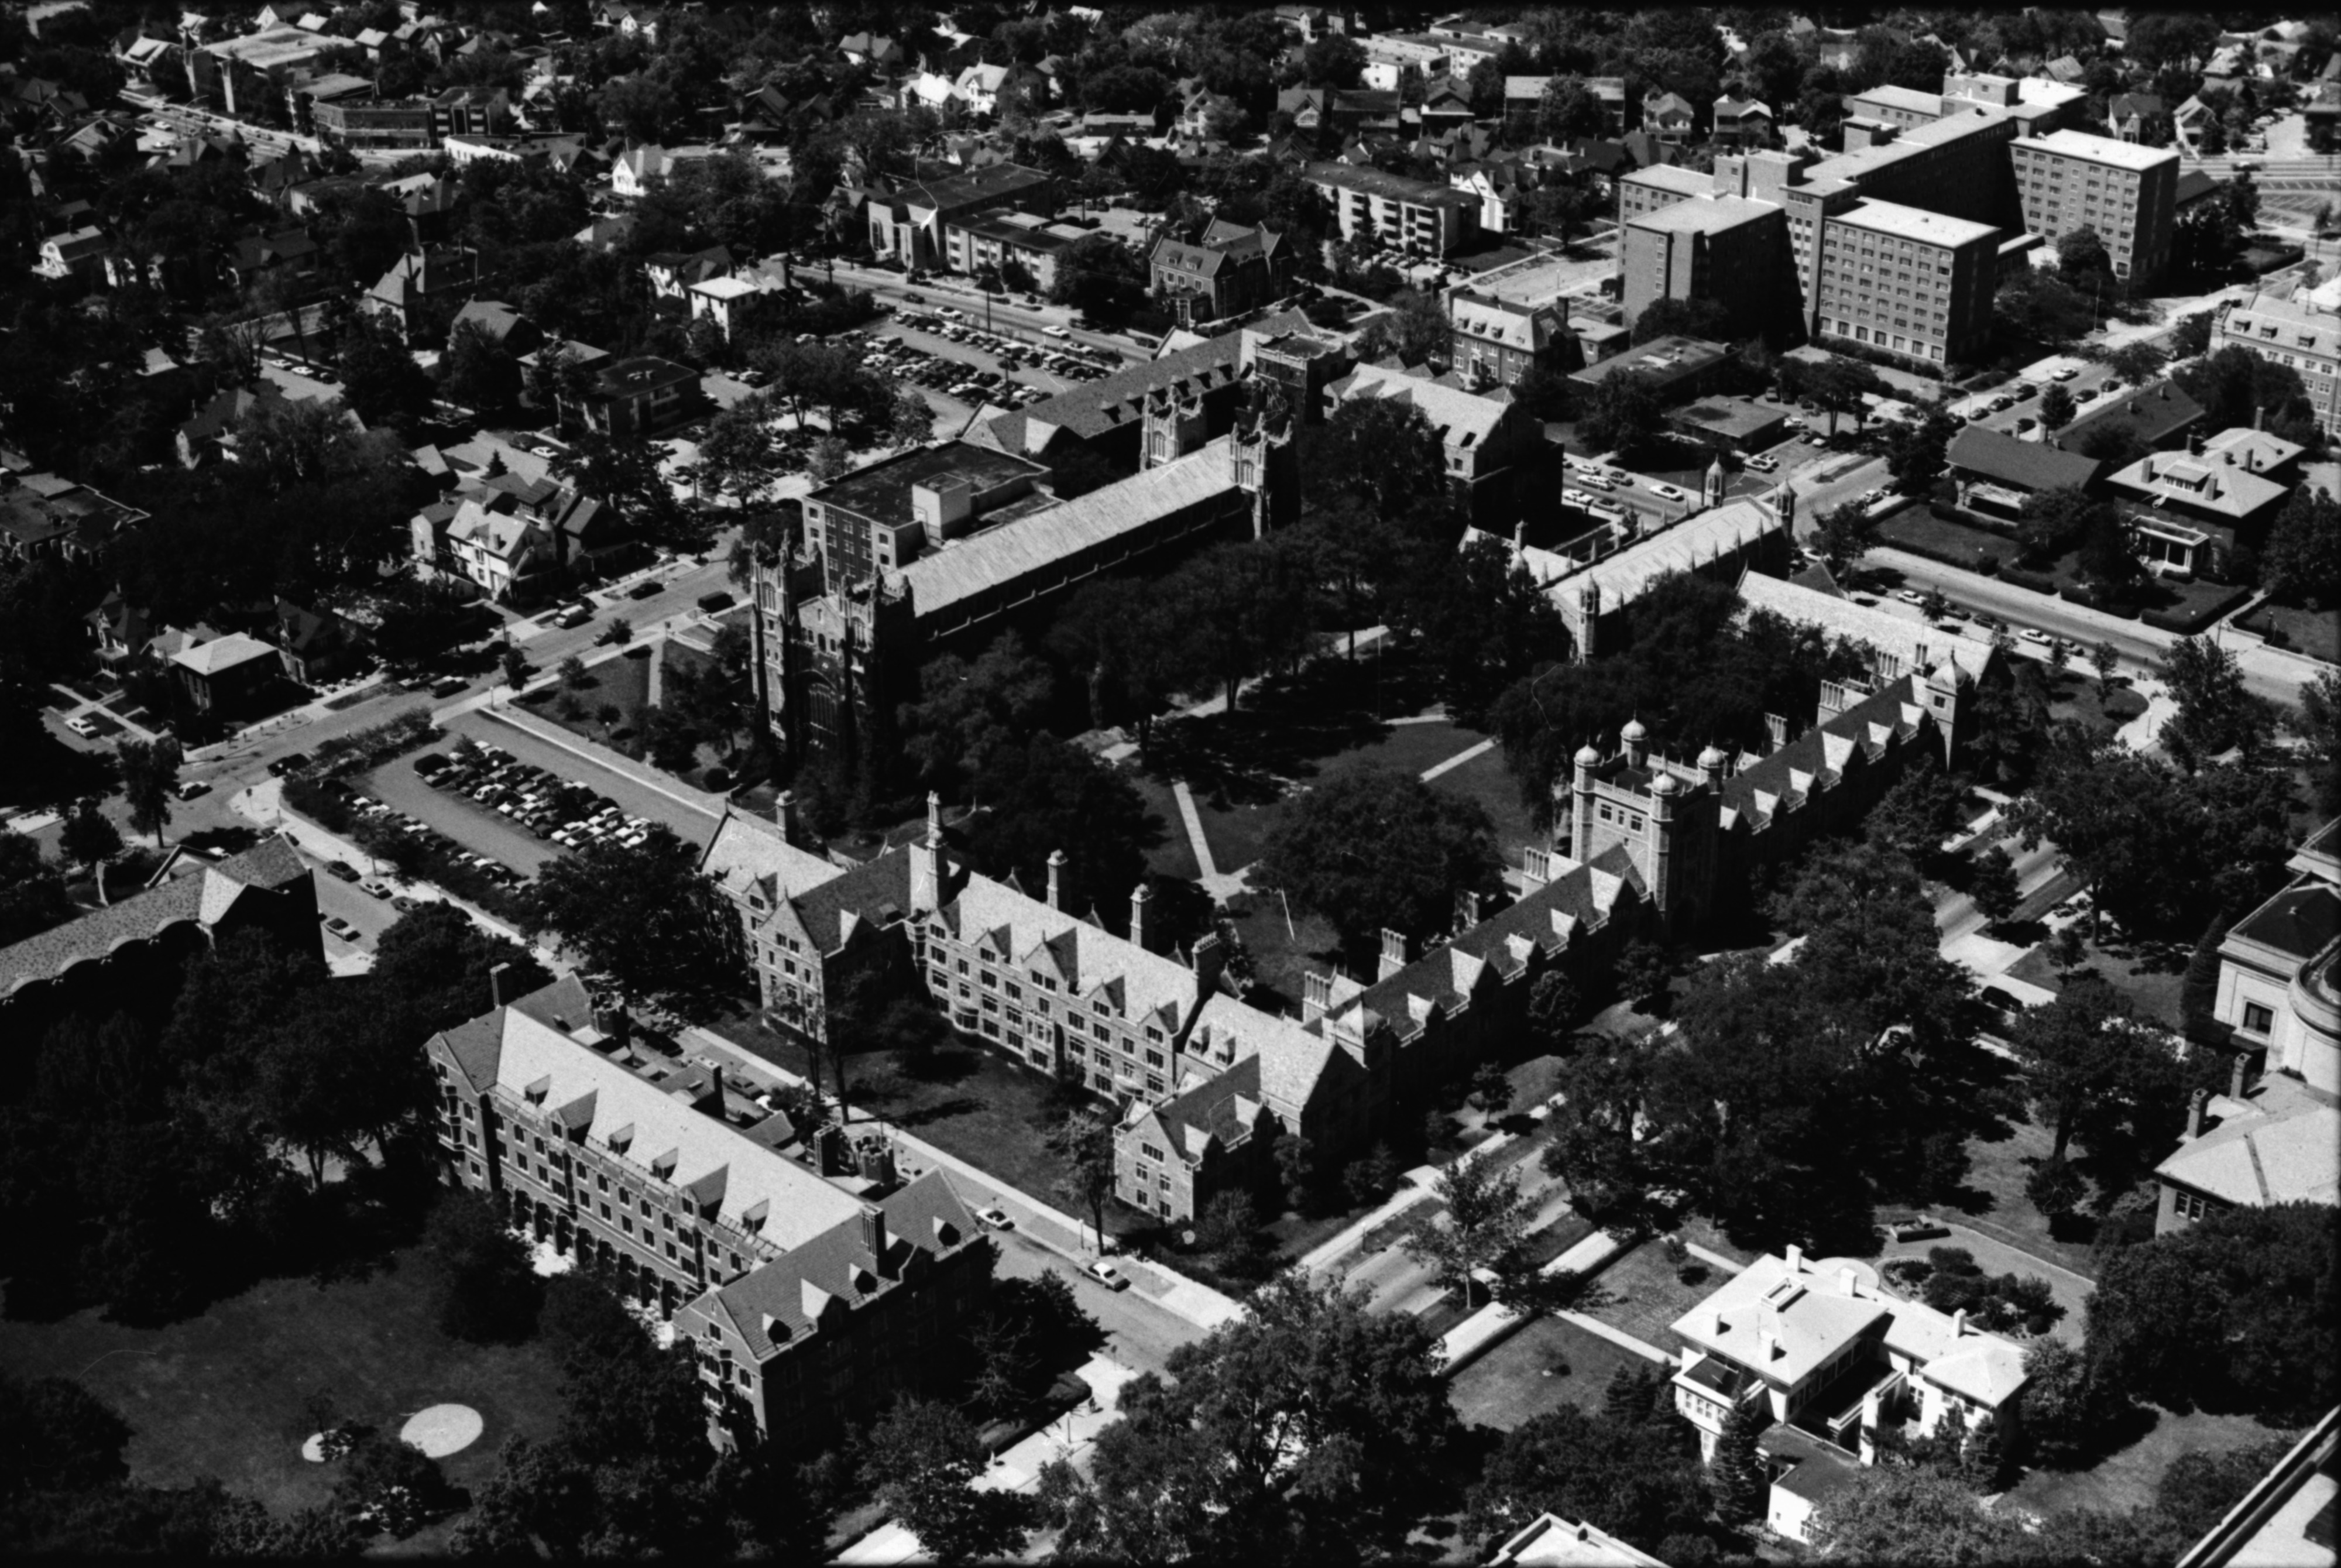 Aerial Photograph of University of Michigan Central Campus, Law Quad, July 1977 image